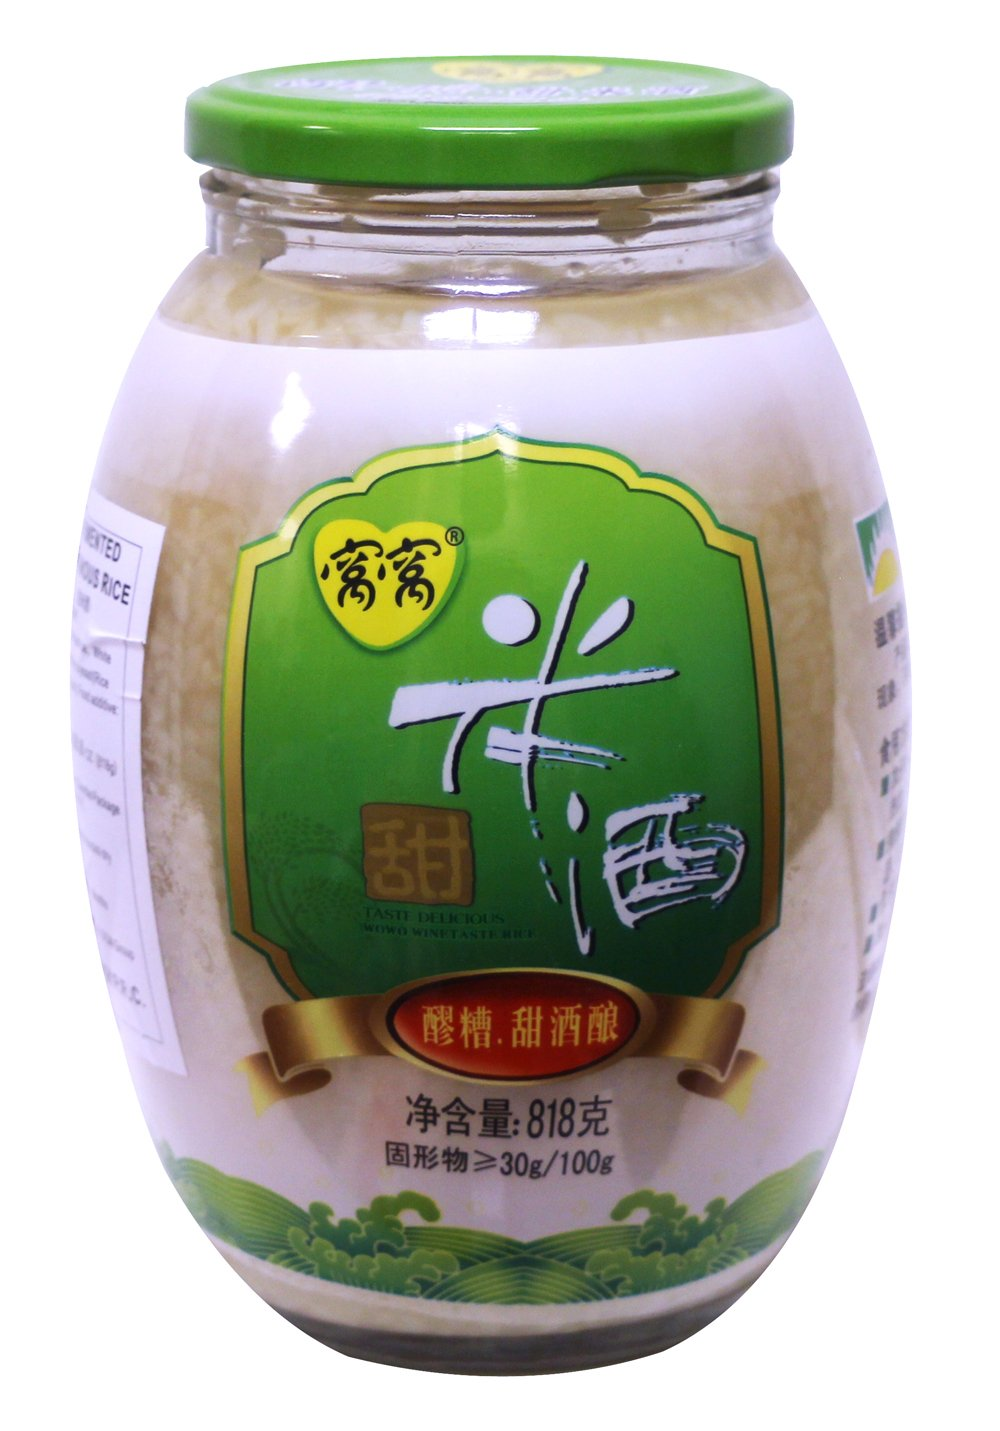 窝窝米酒 甜酒酿 Wowo Fermented Glutinous Rice Drink 818g